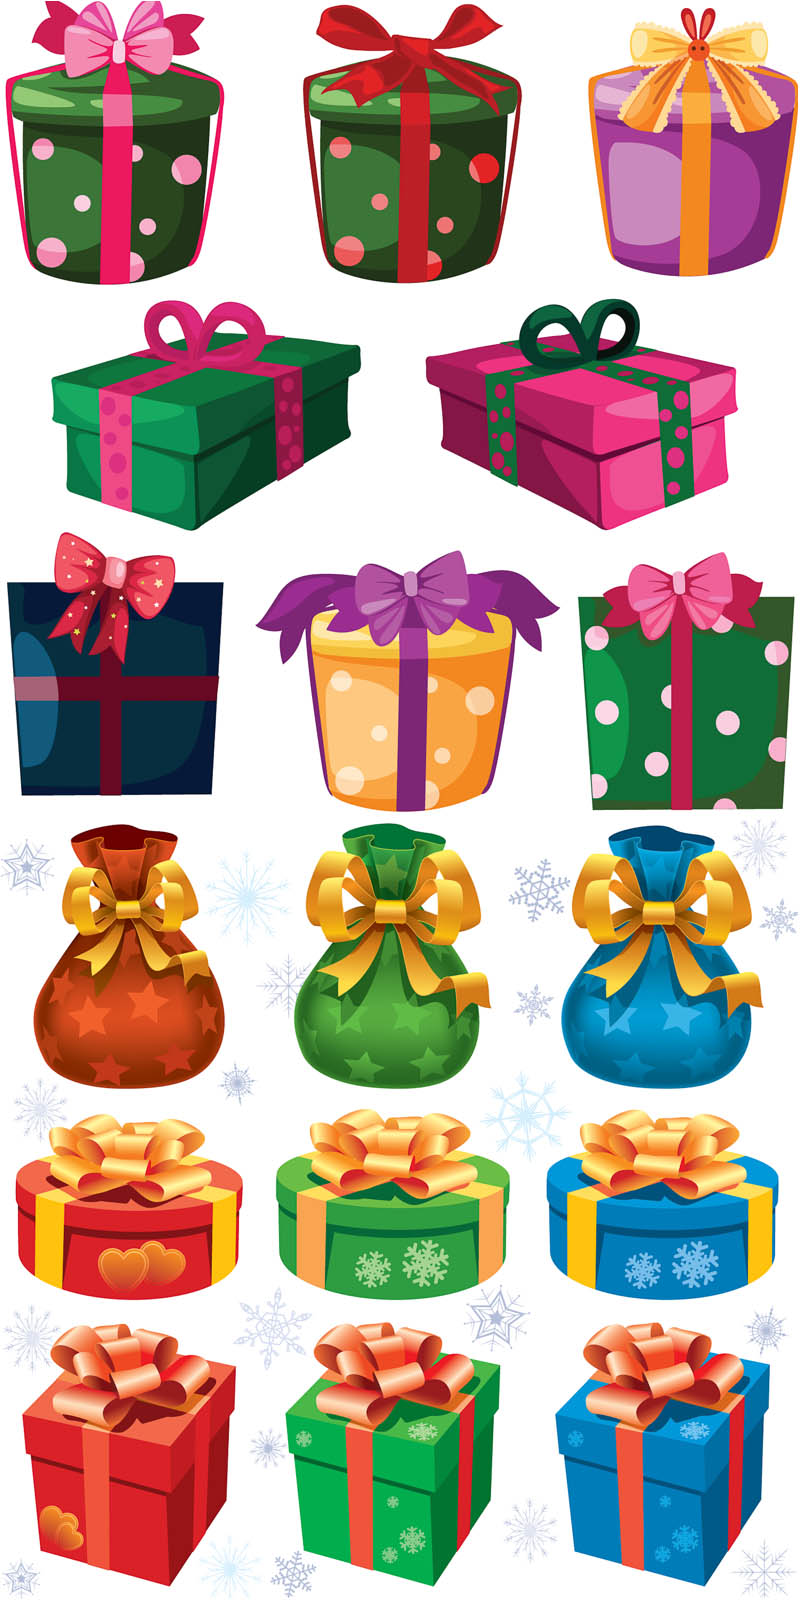 Christmas Gift Clipart Free.Gift Cartoon Graphics Illustration Product Font Png